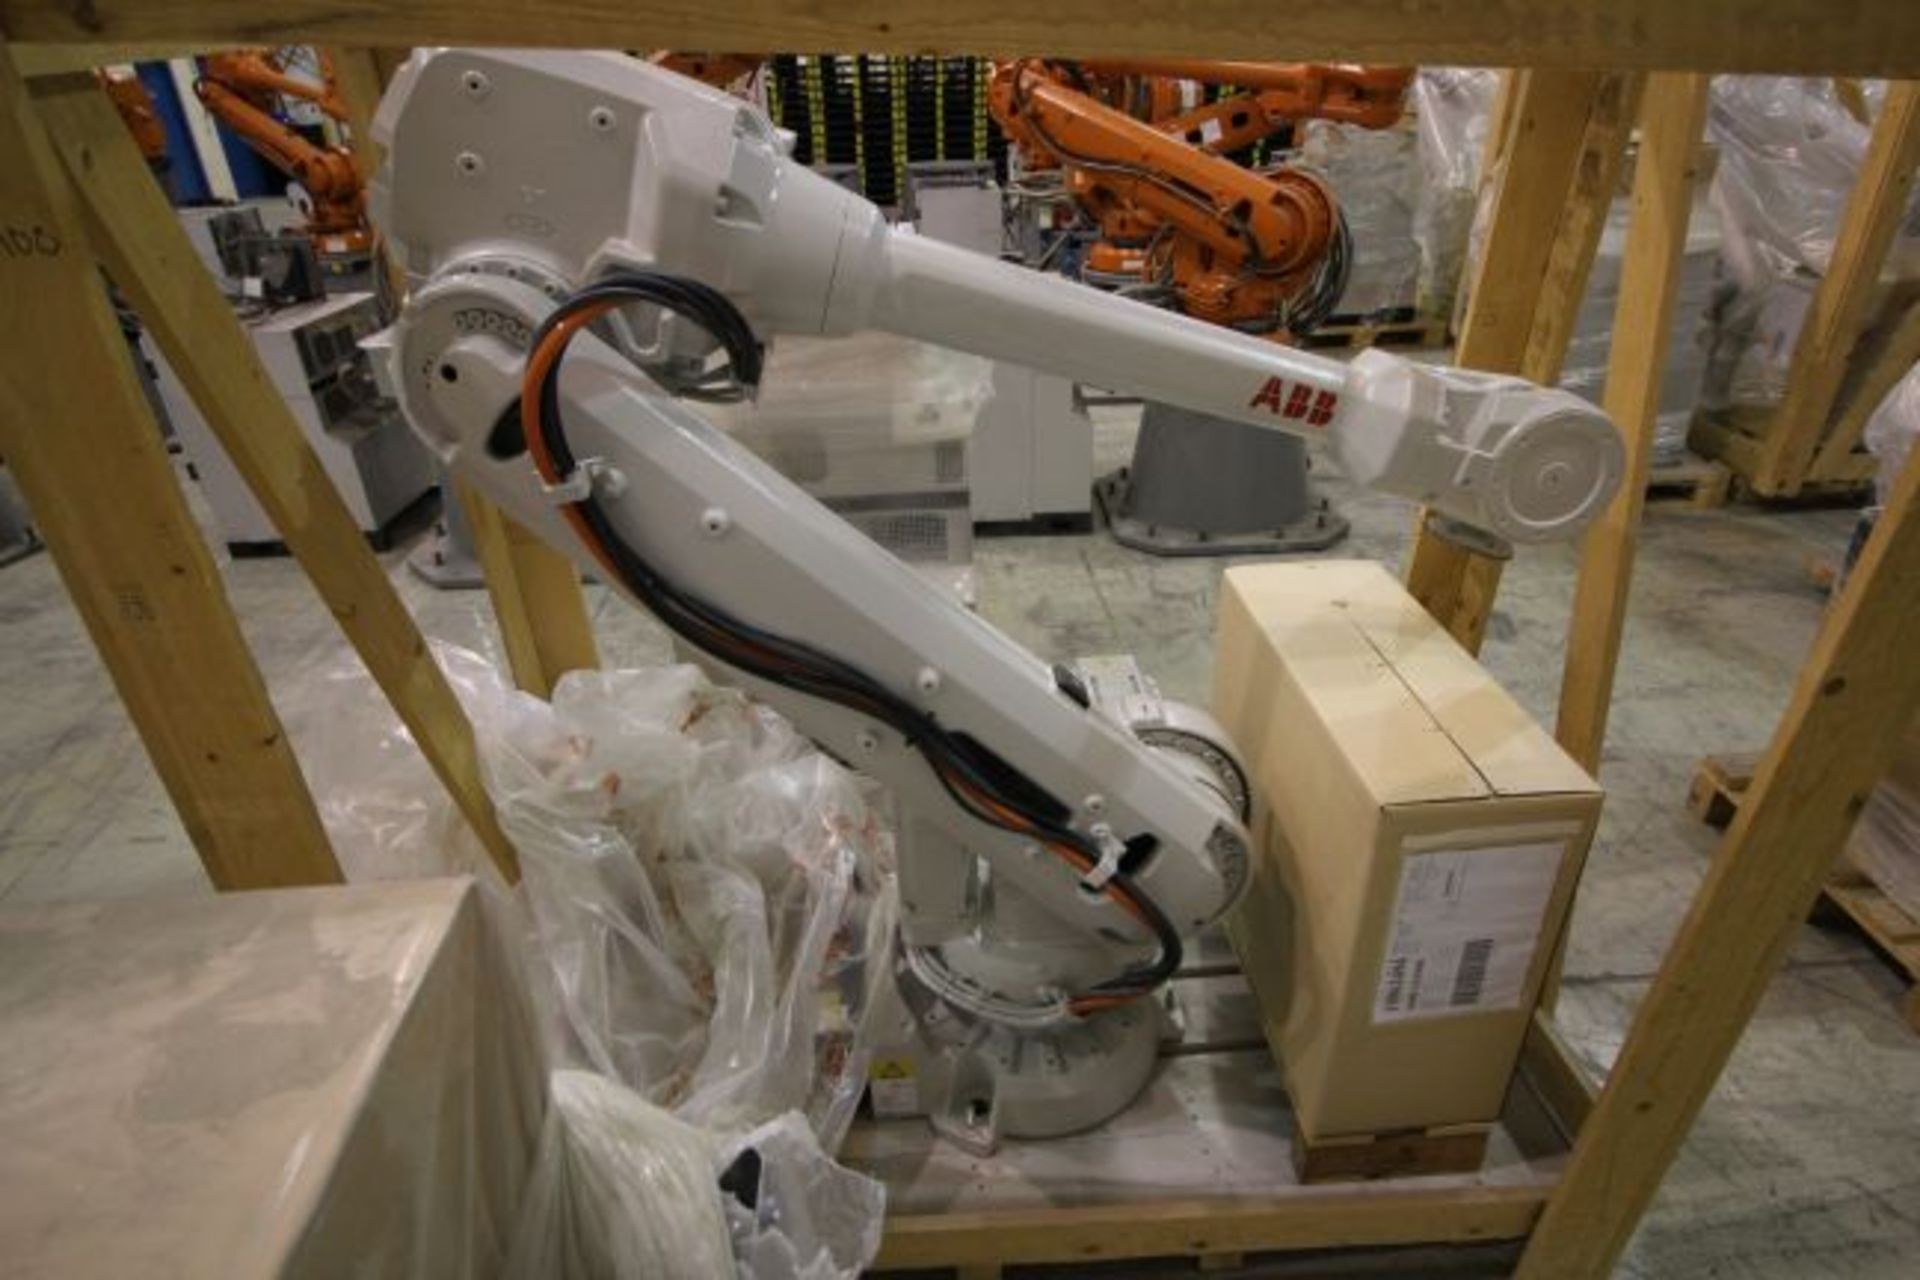 (NEW) ABB ROBOT IRB 4600 2.55/40KG WITH IRC5 CONTROLS, YEAR 2014, SN 101900 TEACH PENDANT& CABLES